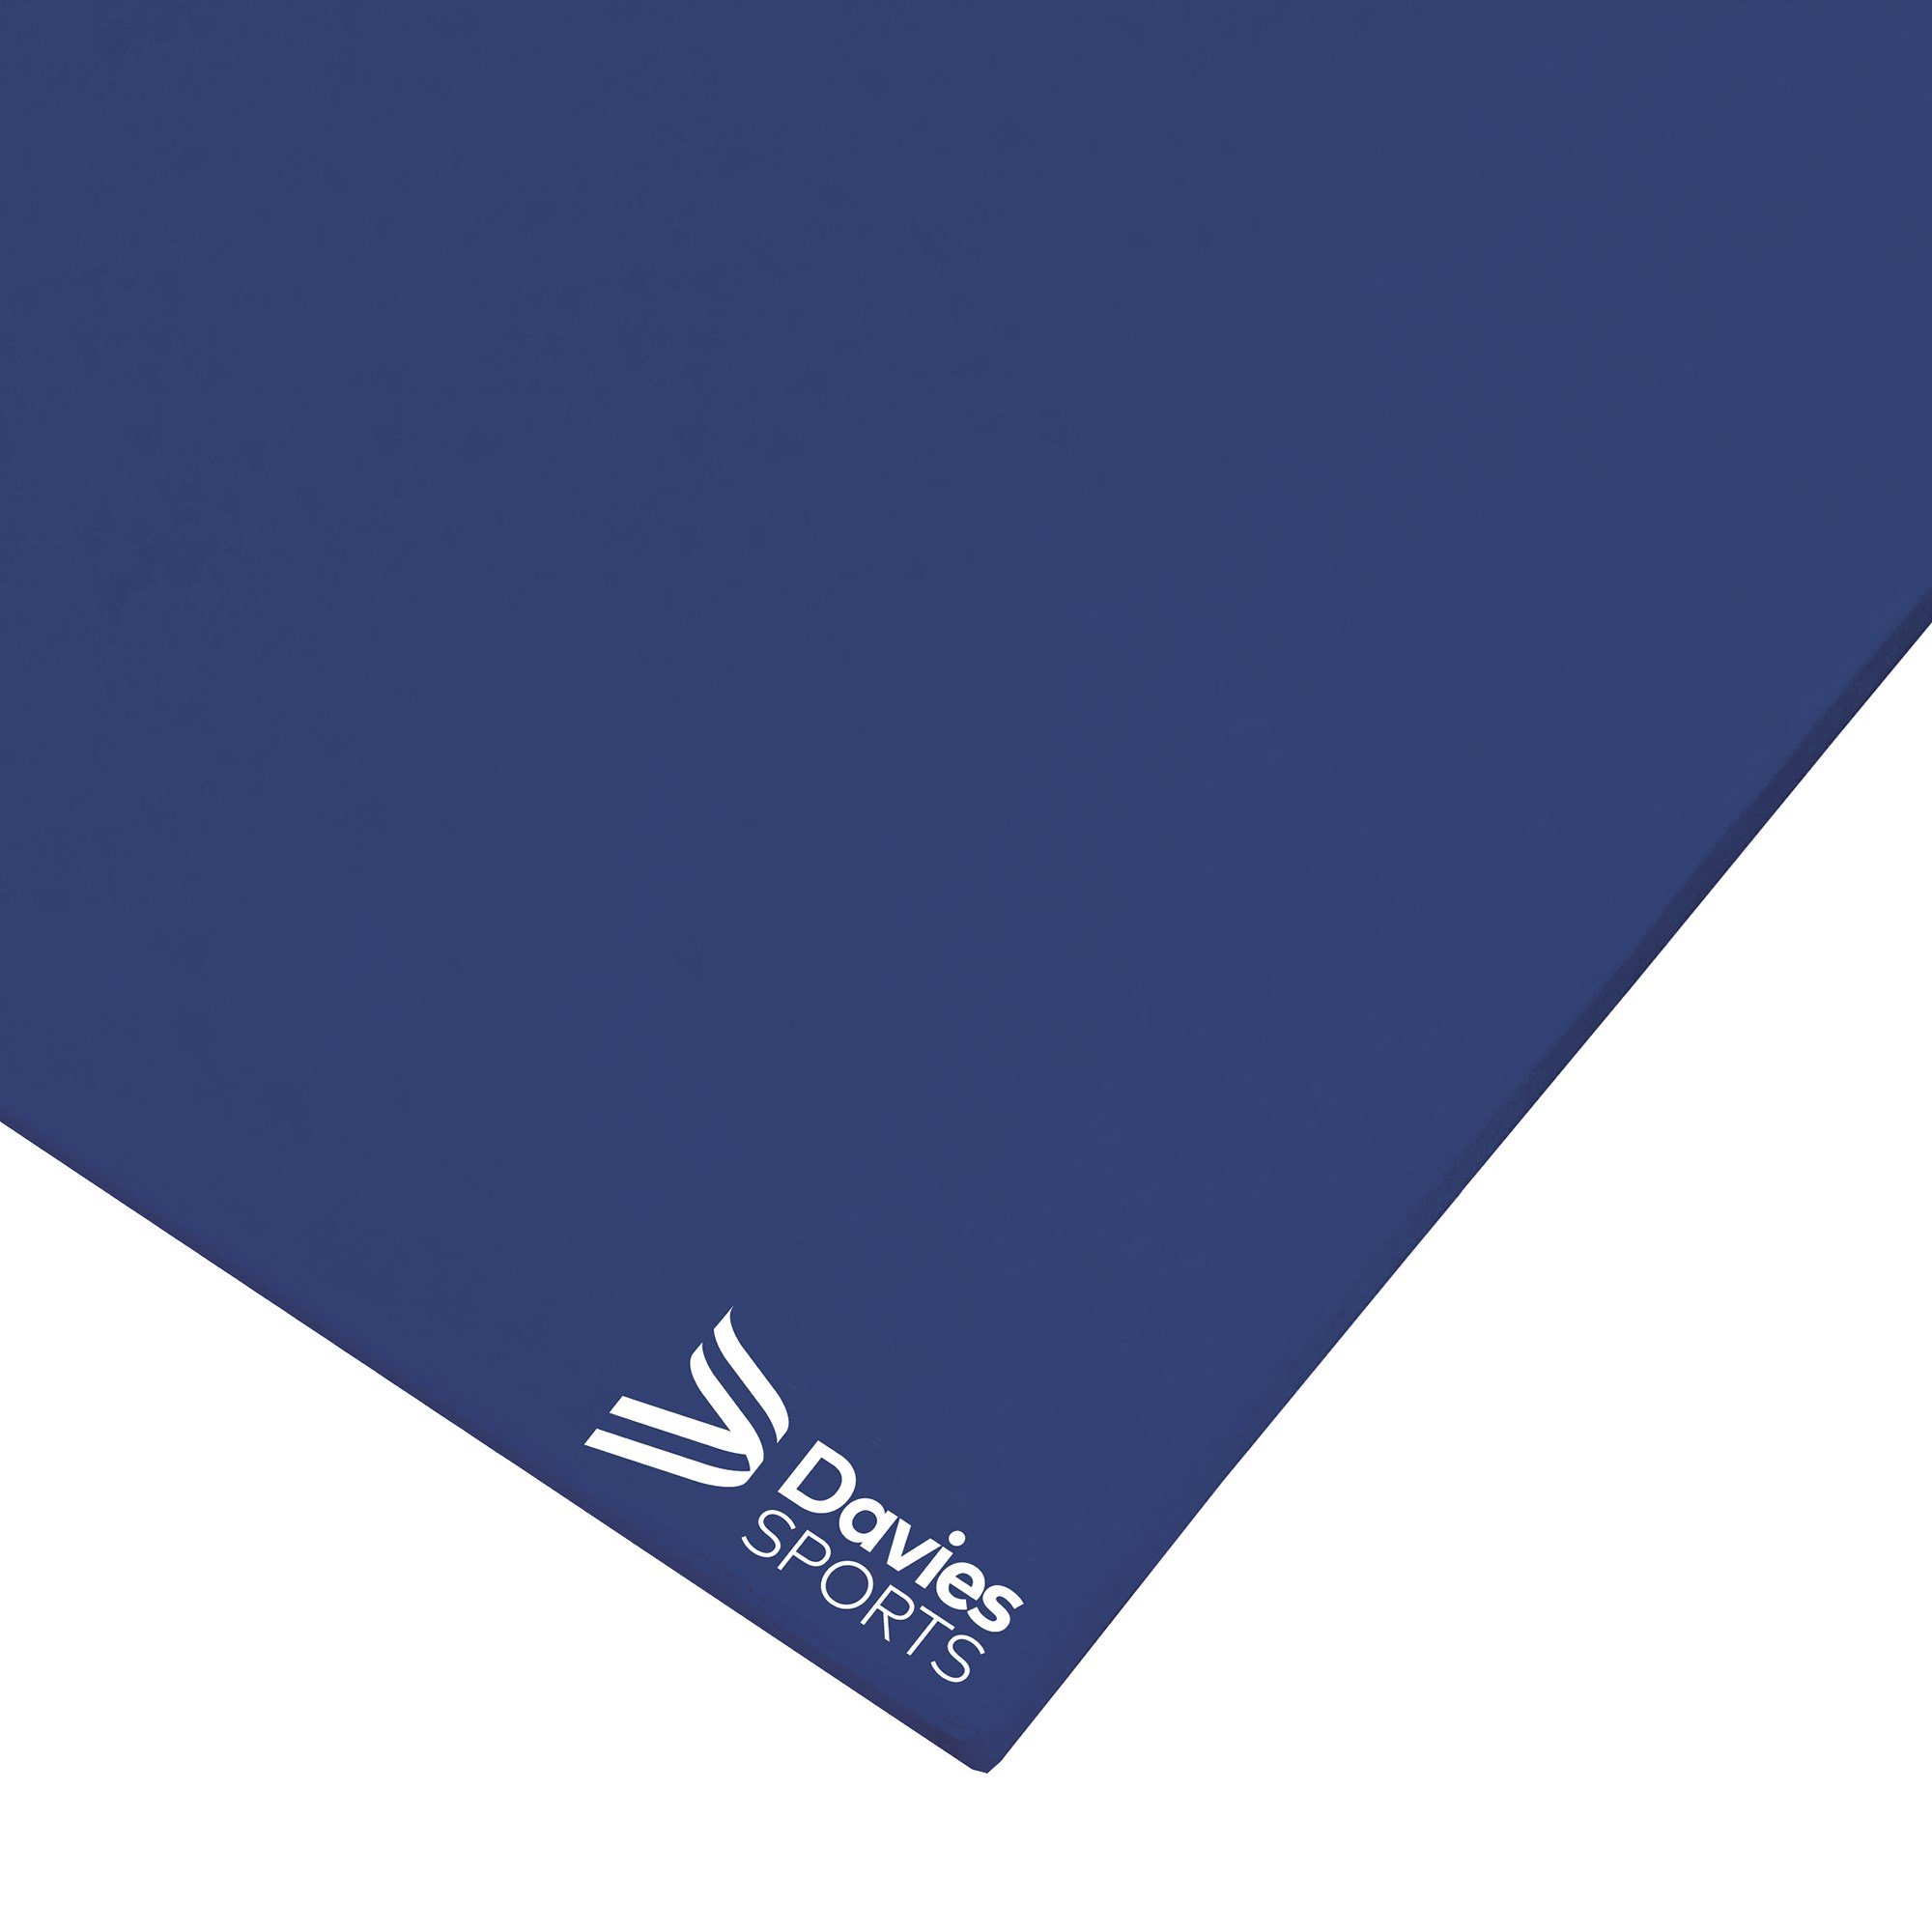 Davies Sports Lightweight Gym Mat Standard Blue  Link-a-Lay - 1.22m x 0.91m x 25mm